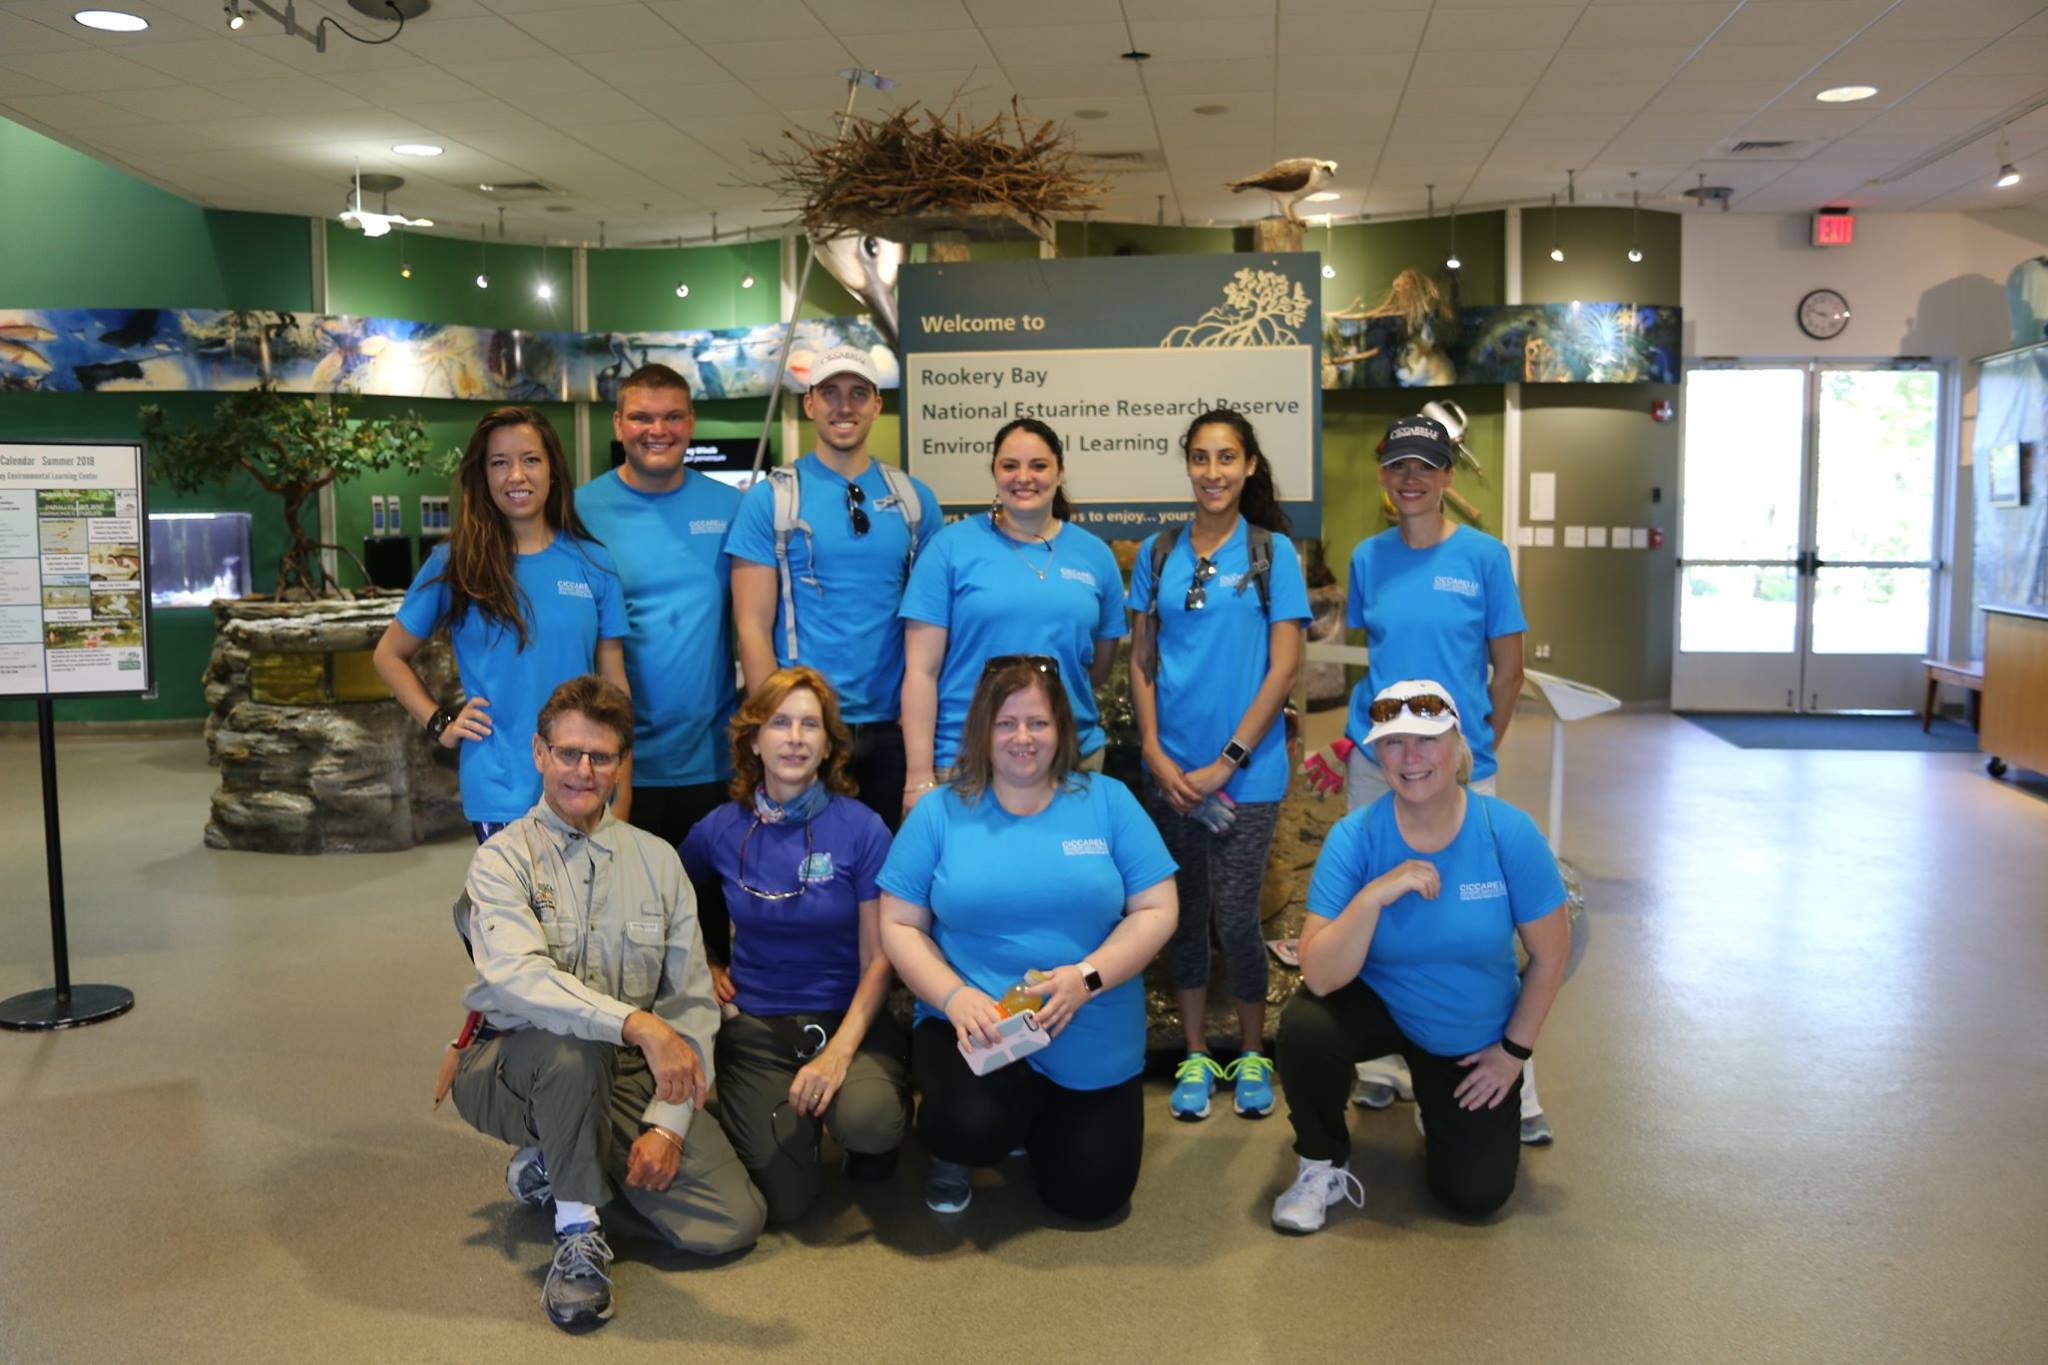 Rookery Bay Volunteer Team